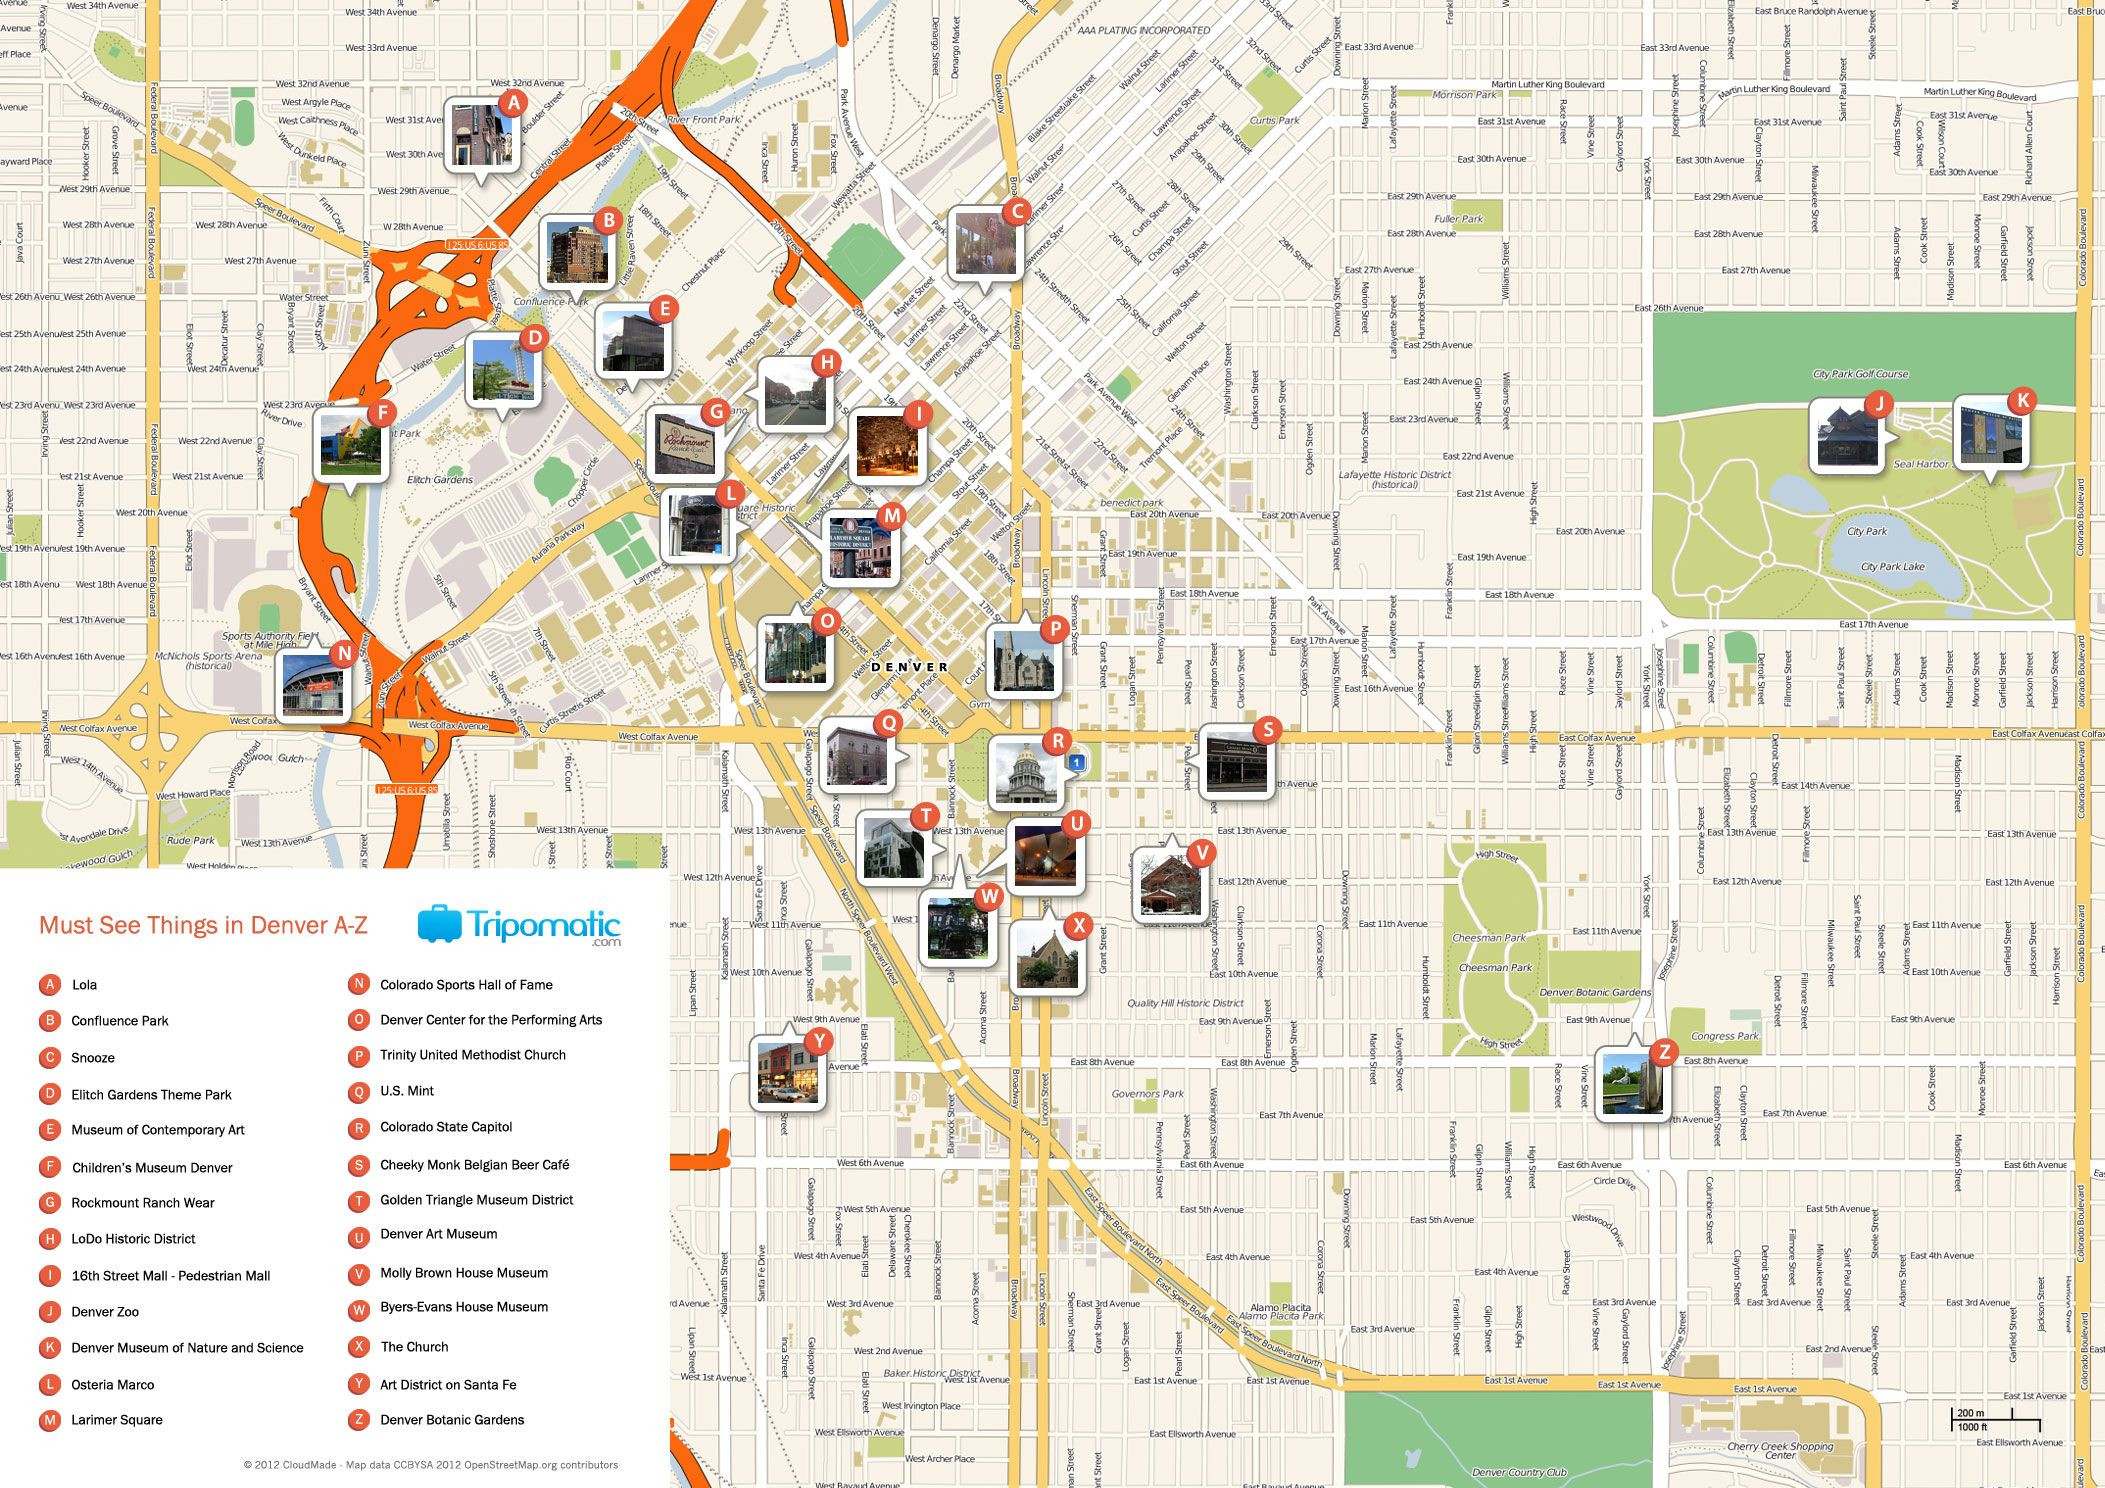 Free Printable Map of Denver attractions